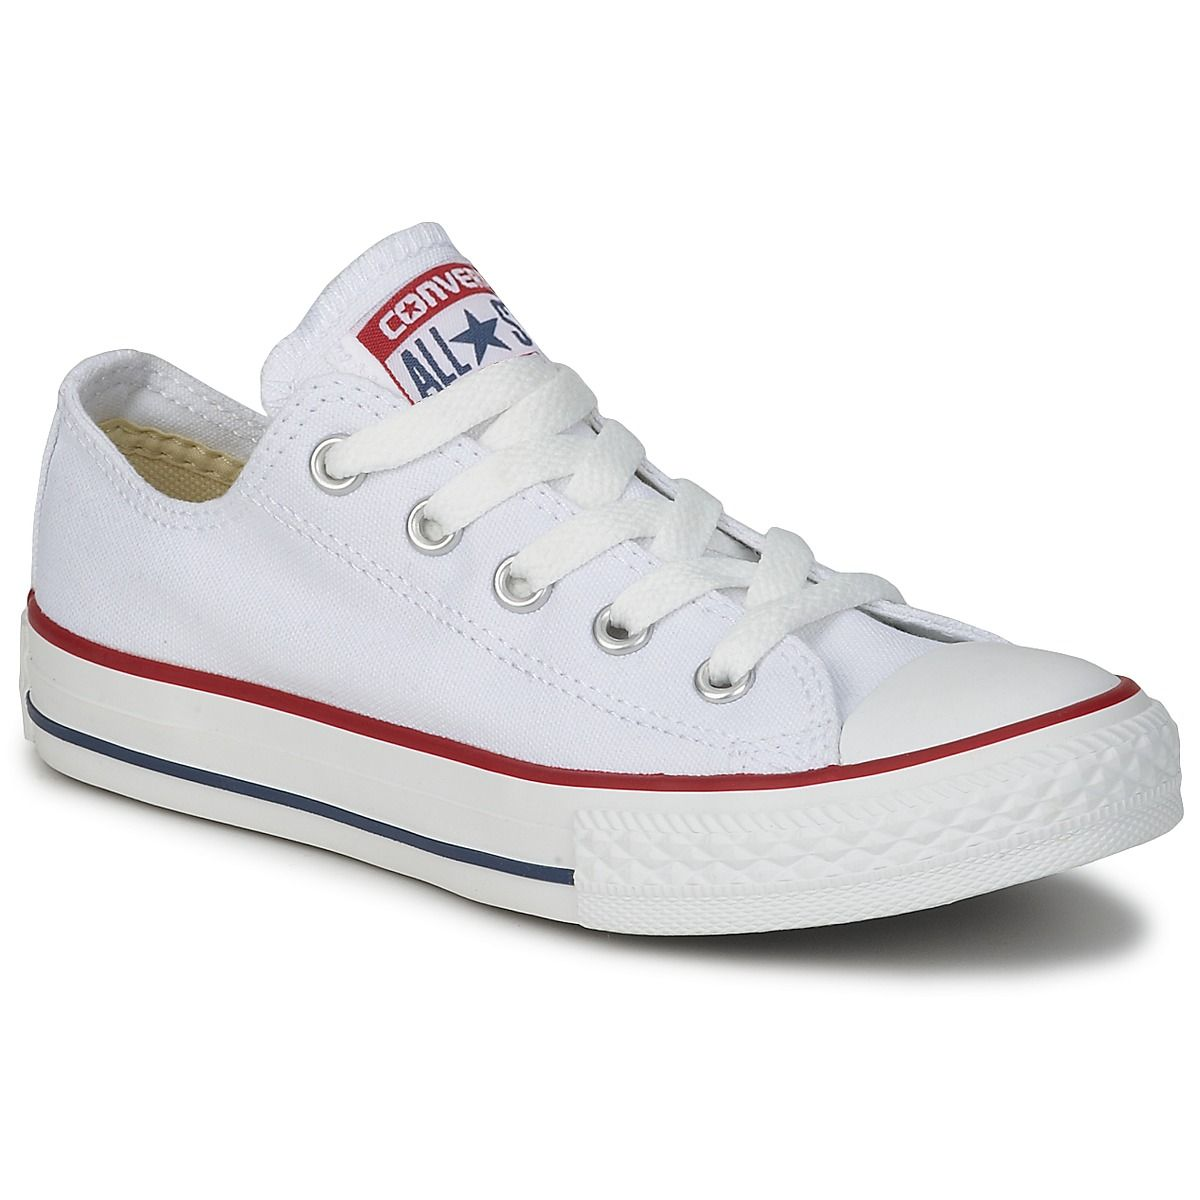 Chuck taylor all star core ox | Mode converse, Converse ...